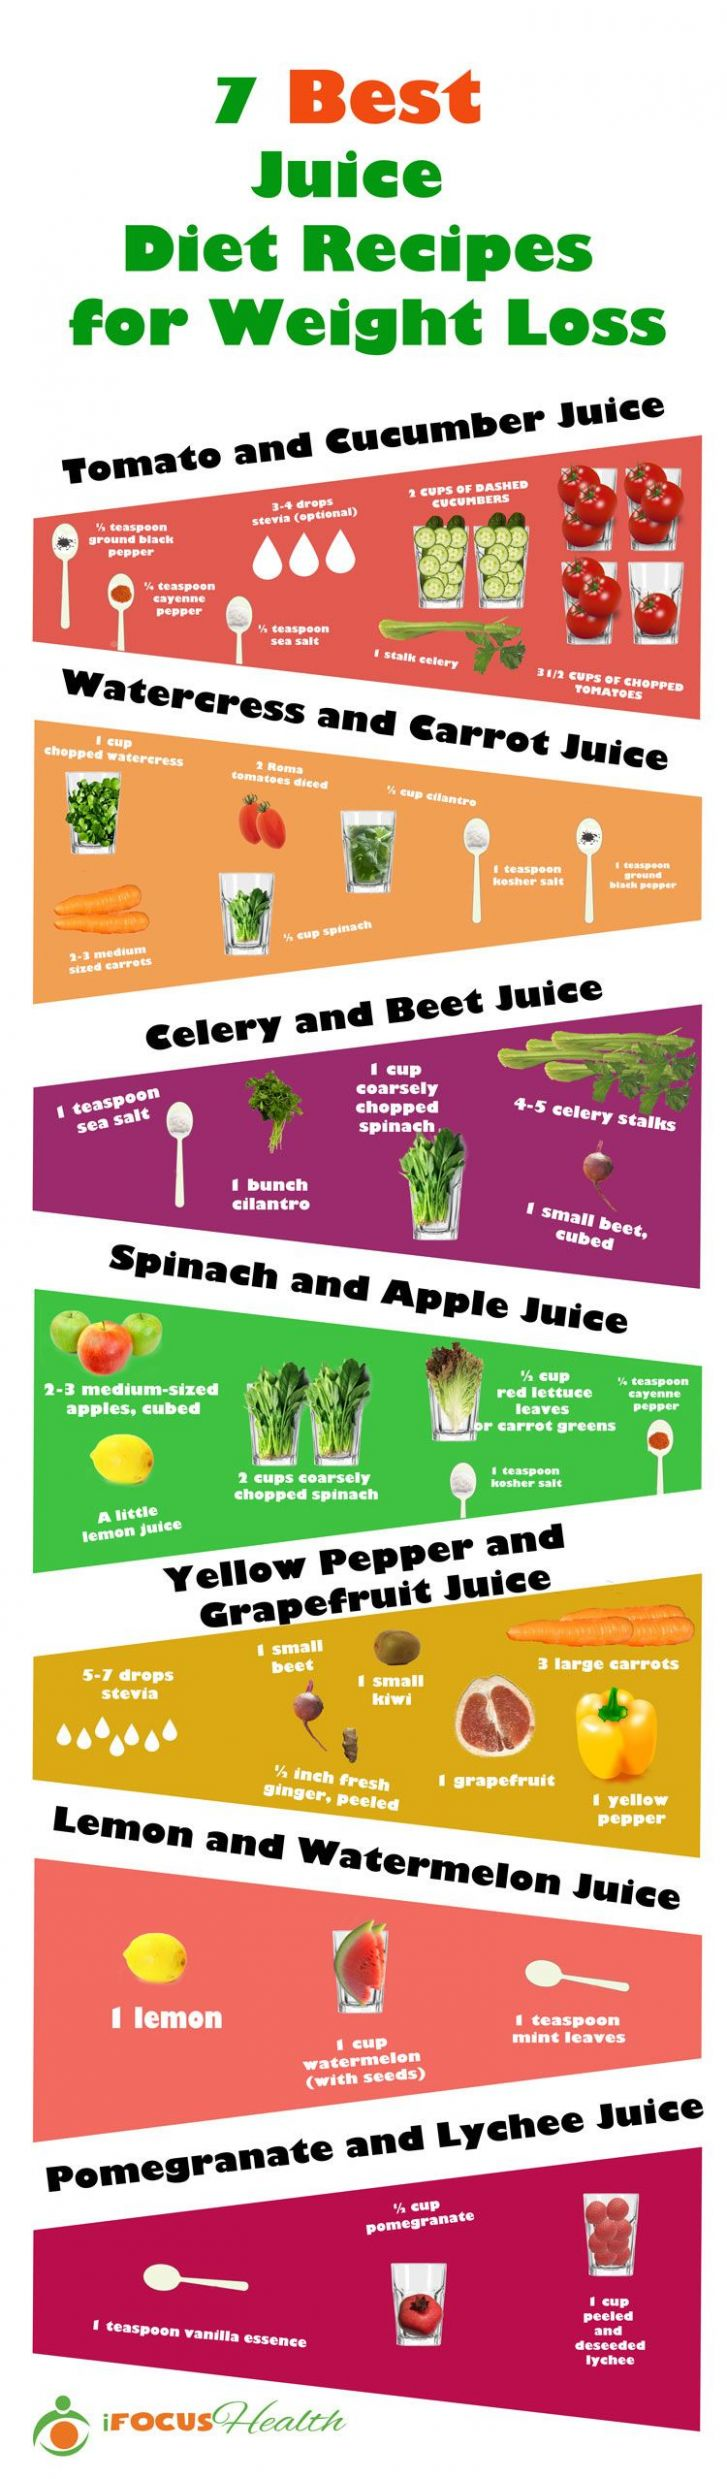 11 Simple Juicing Recipes for Weight Loss (Infographic) - Juicing Recipes Weight Loss Plan